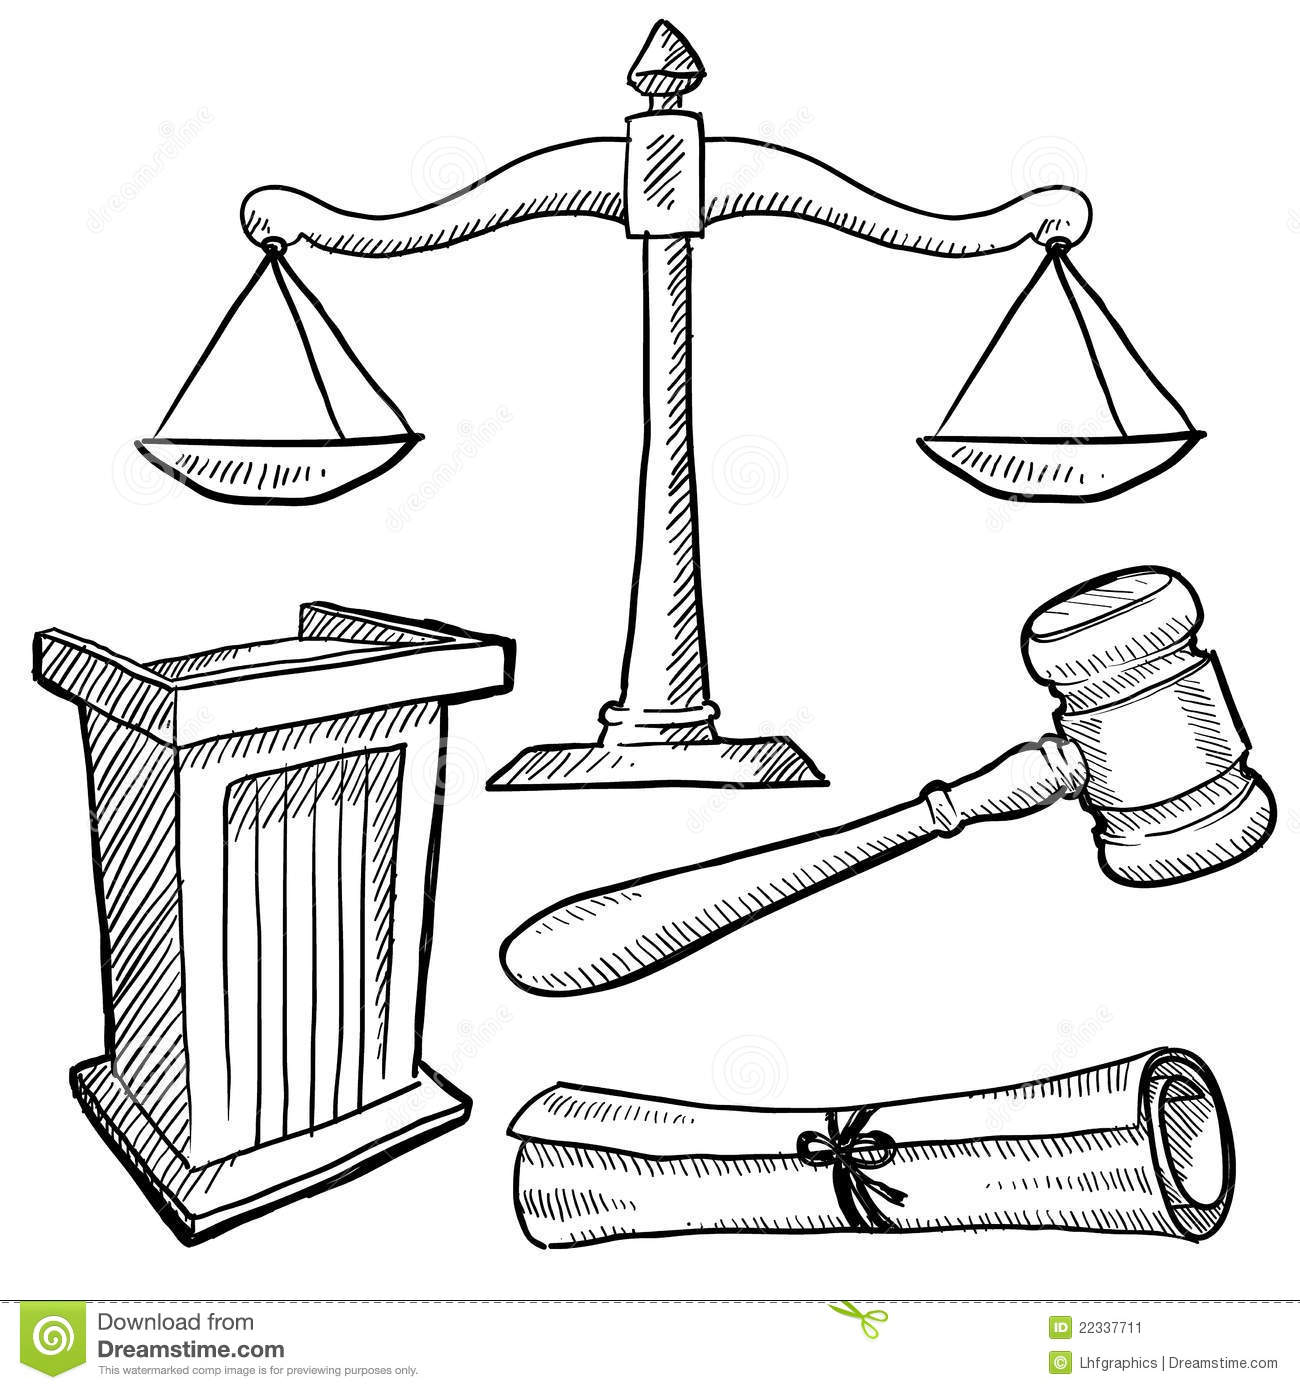 Courtroom Objects Sketch Stock Image